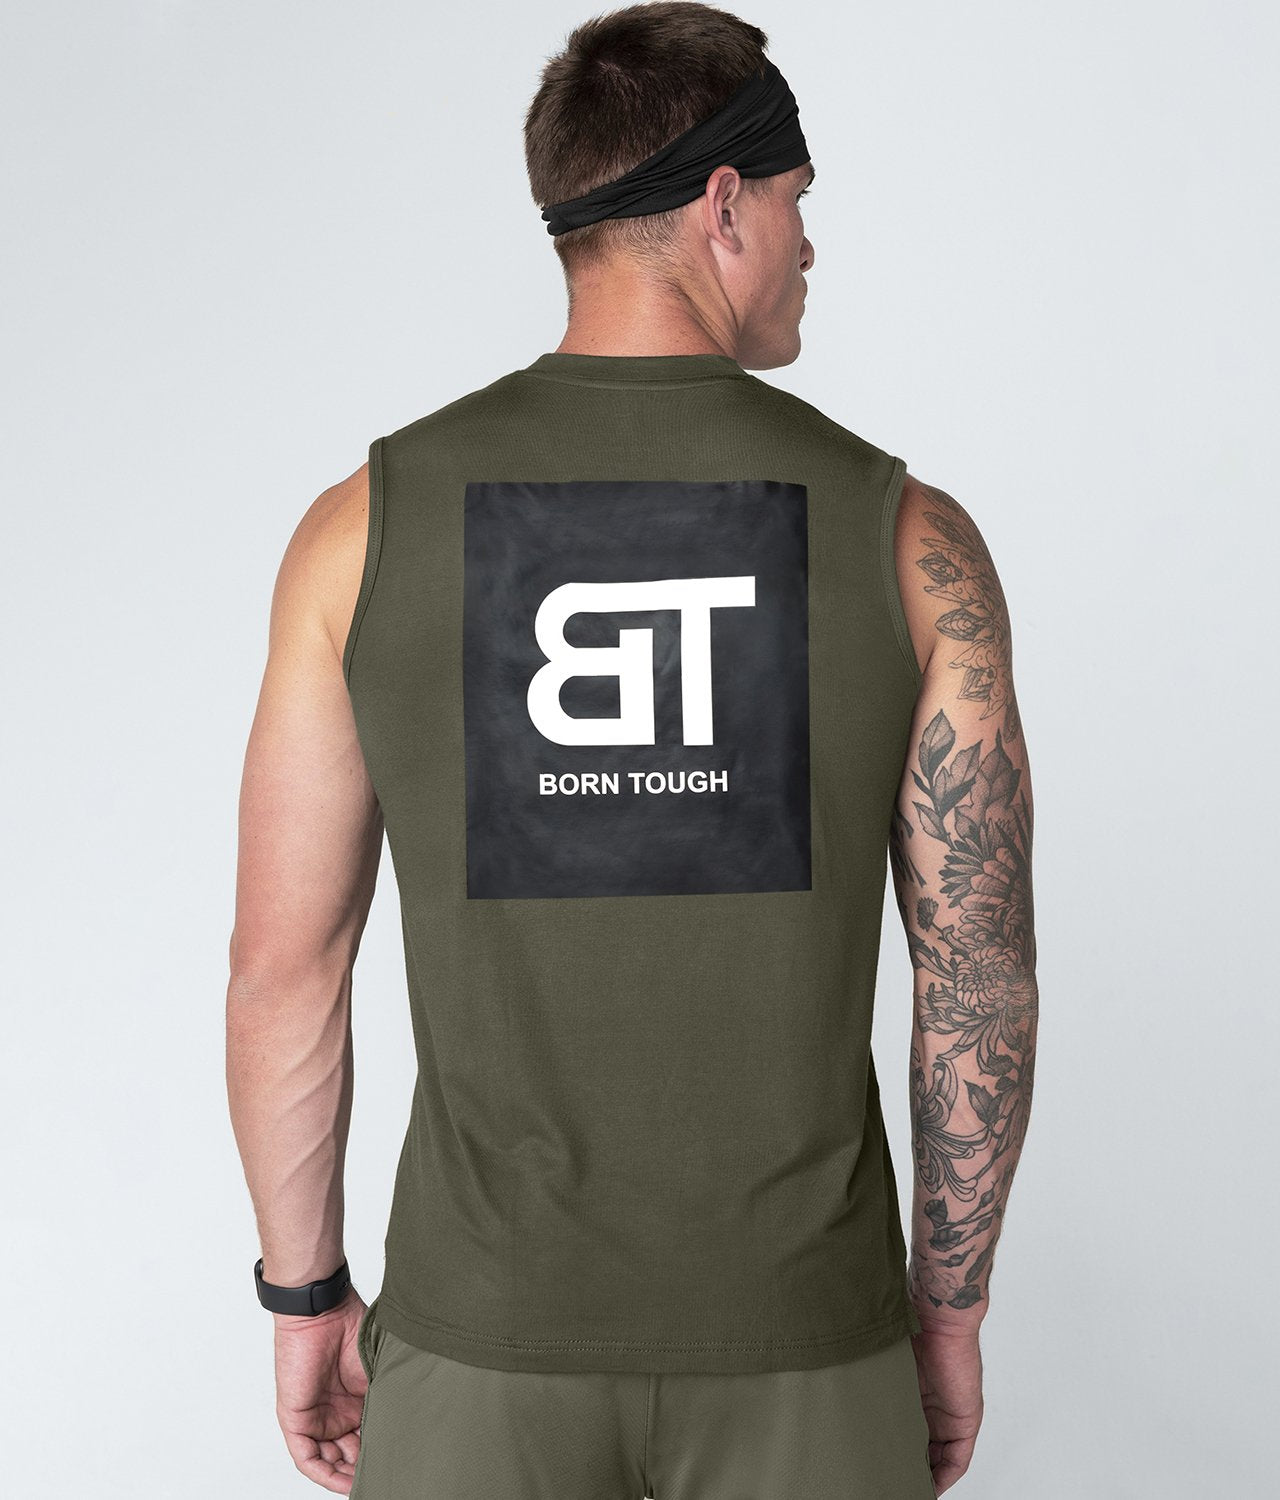 Born Tough United Kingdom Army Green Highly Breathable Sleeveless Gym Workout Shirt For Men